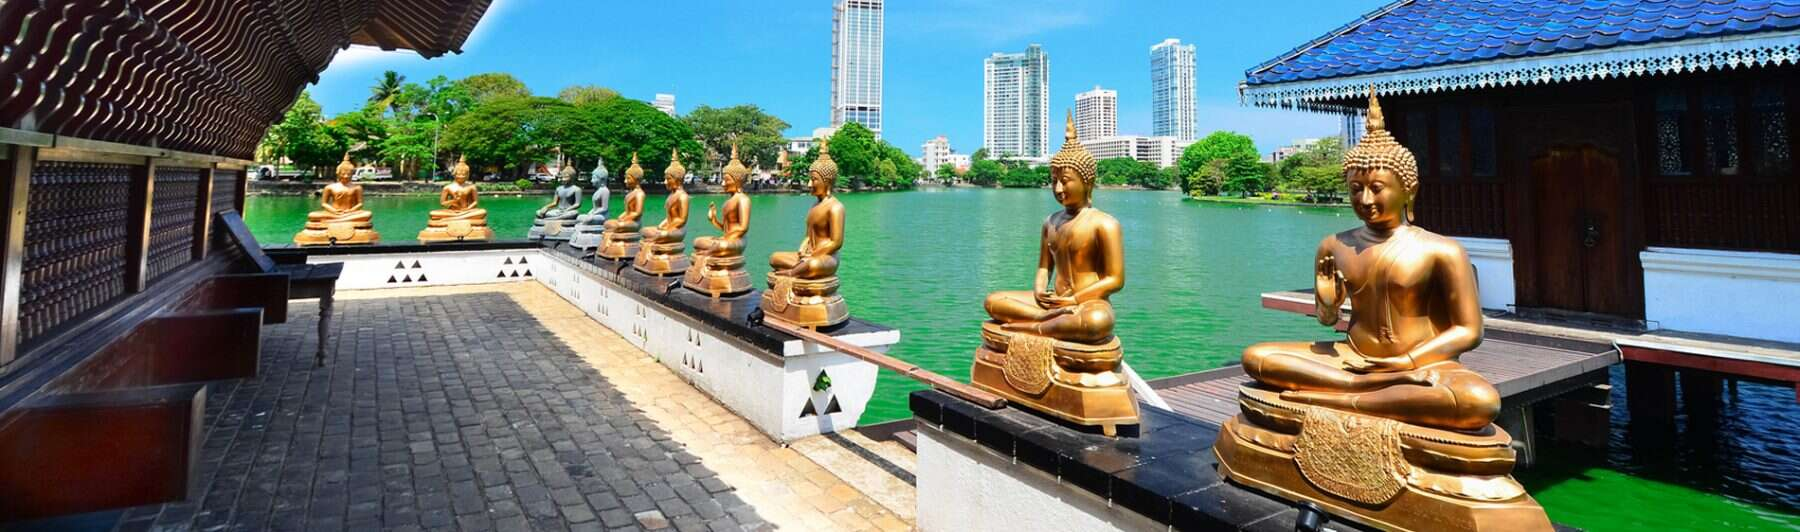 Welcome to Sri Lanka – <b>Postponed to Fall 2021</b>